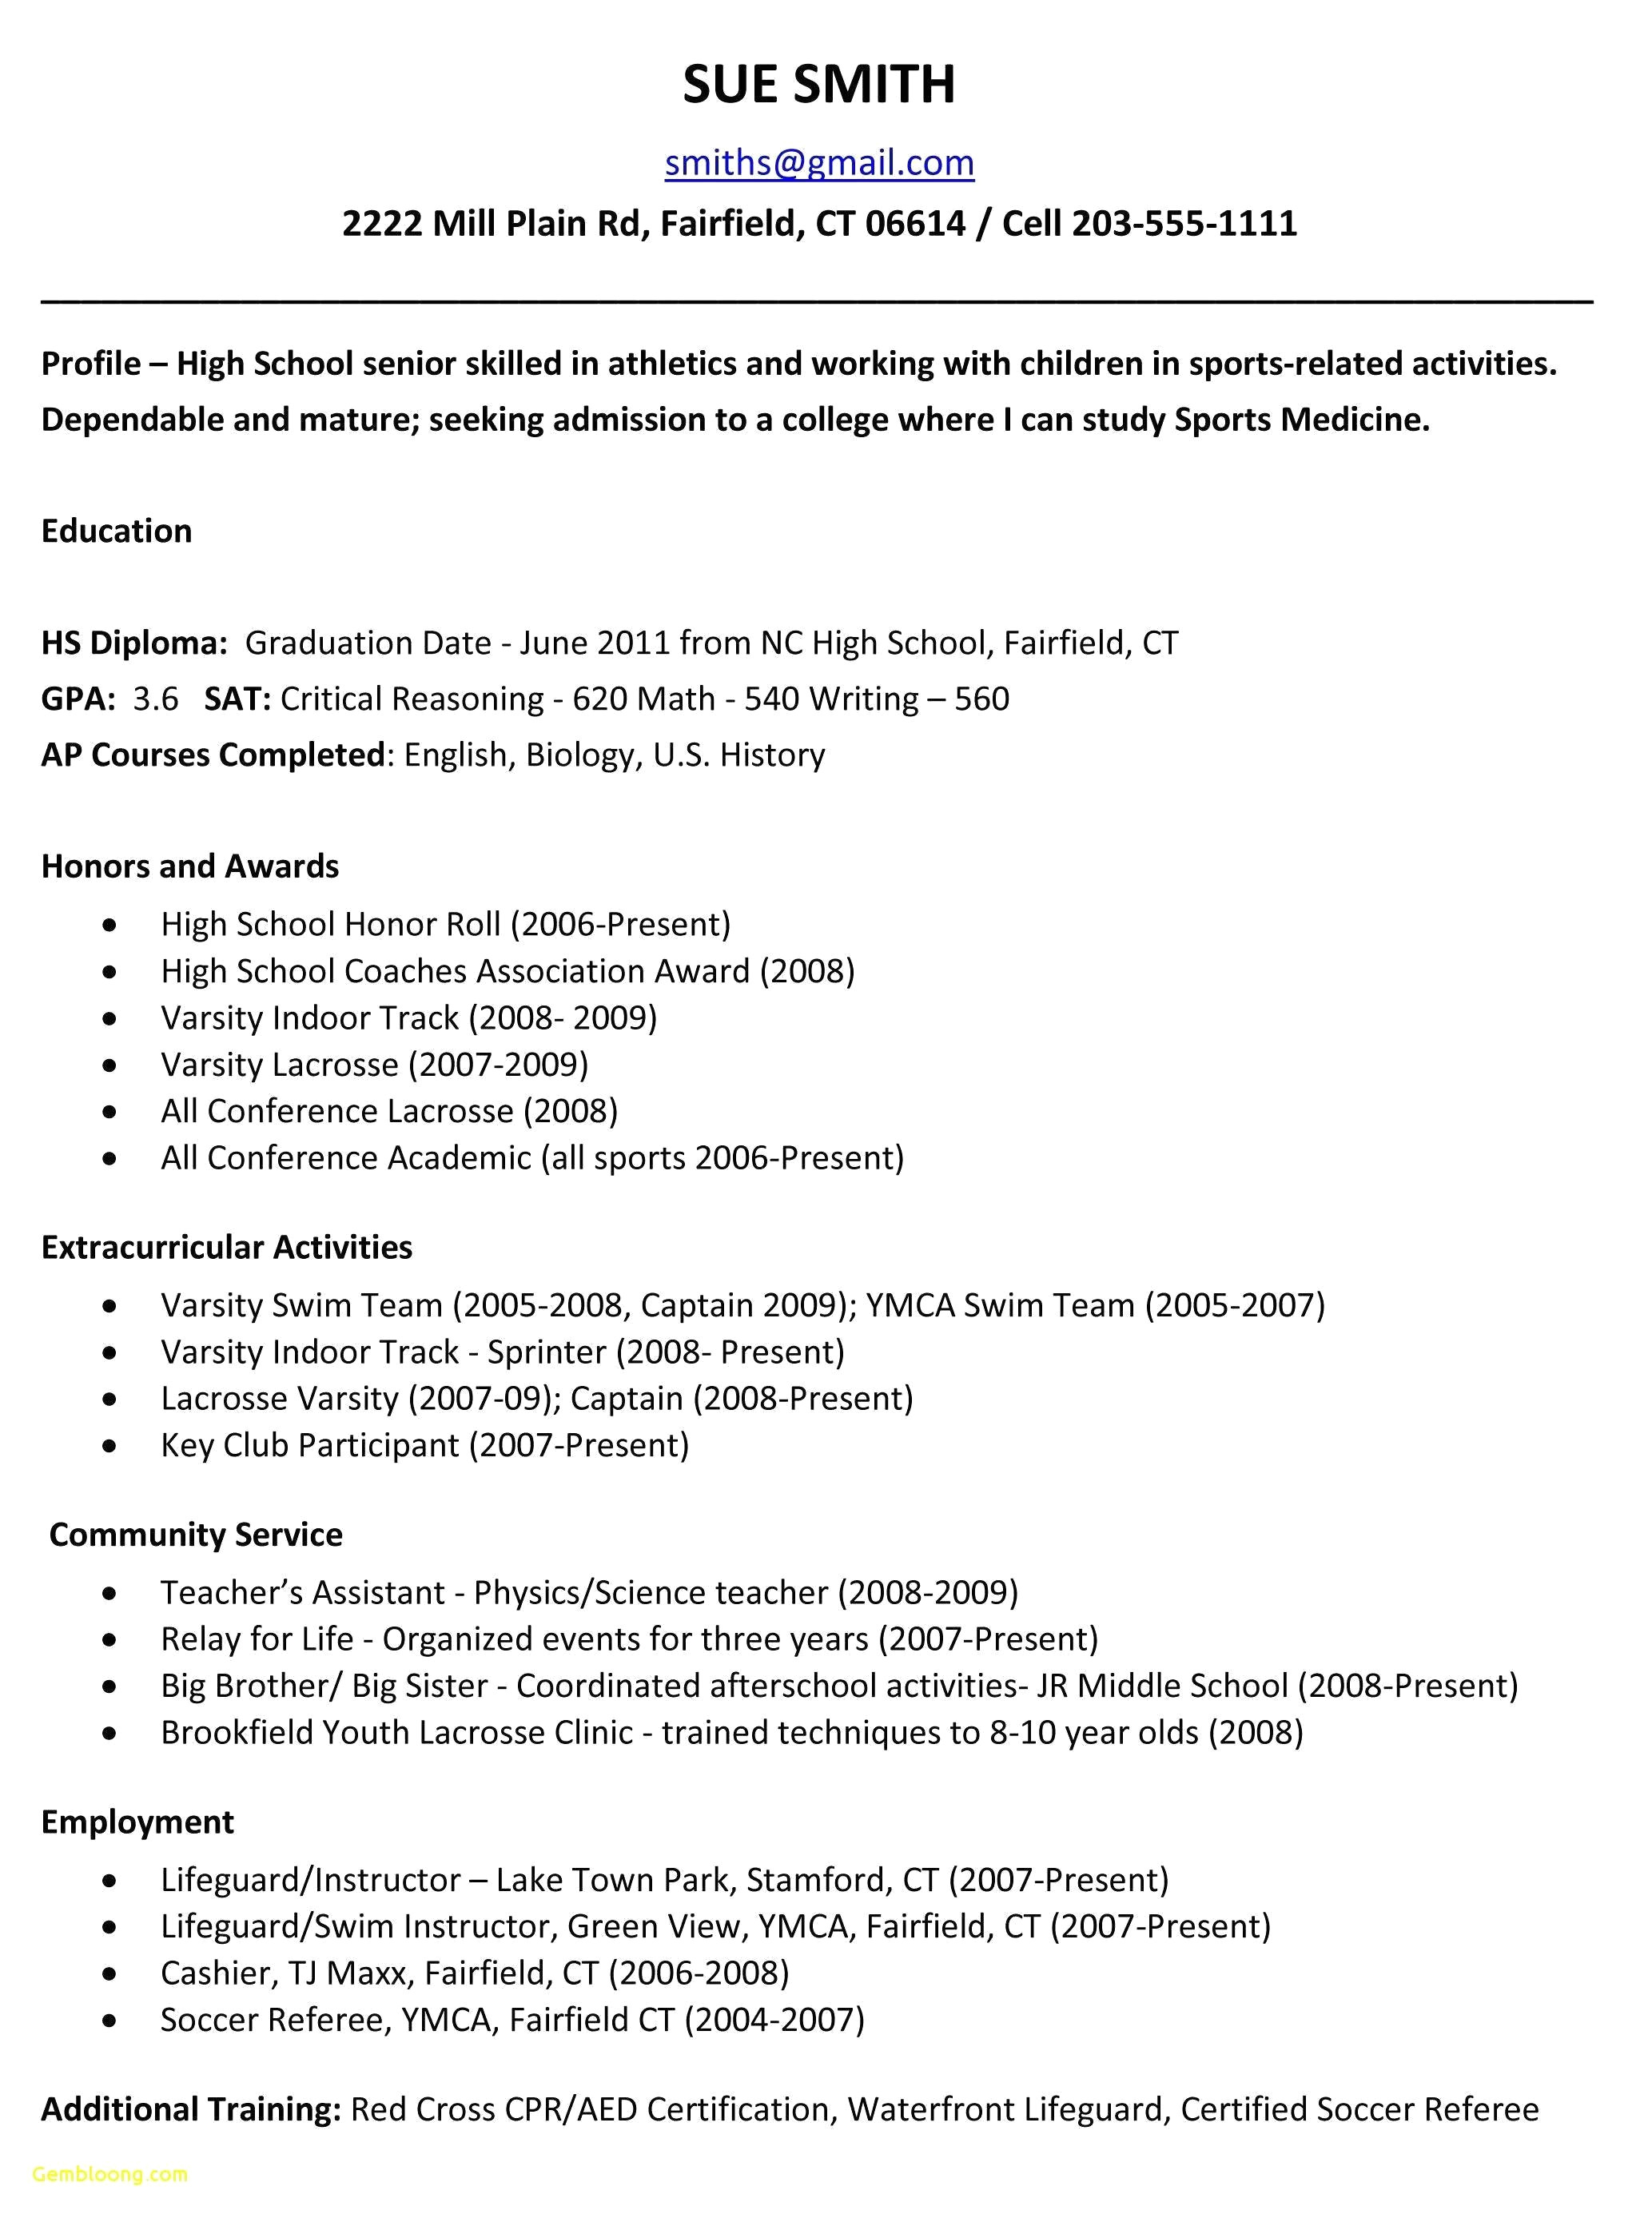 Extracurricular Activities Resume Template - 44 Design Sample social Work Resume